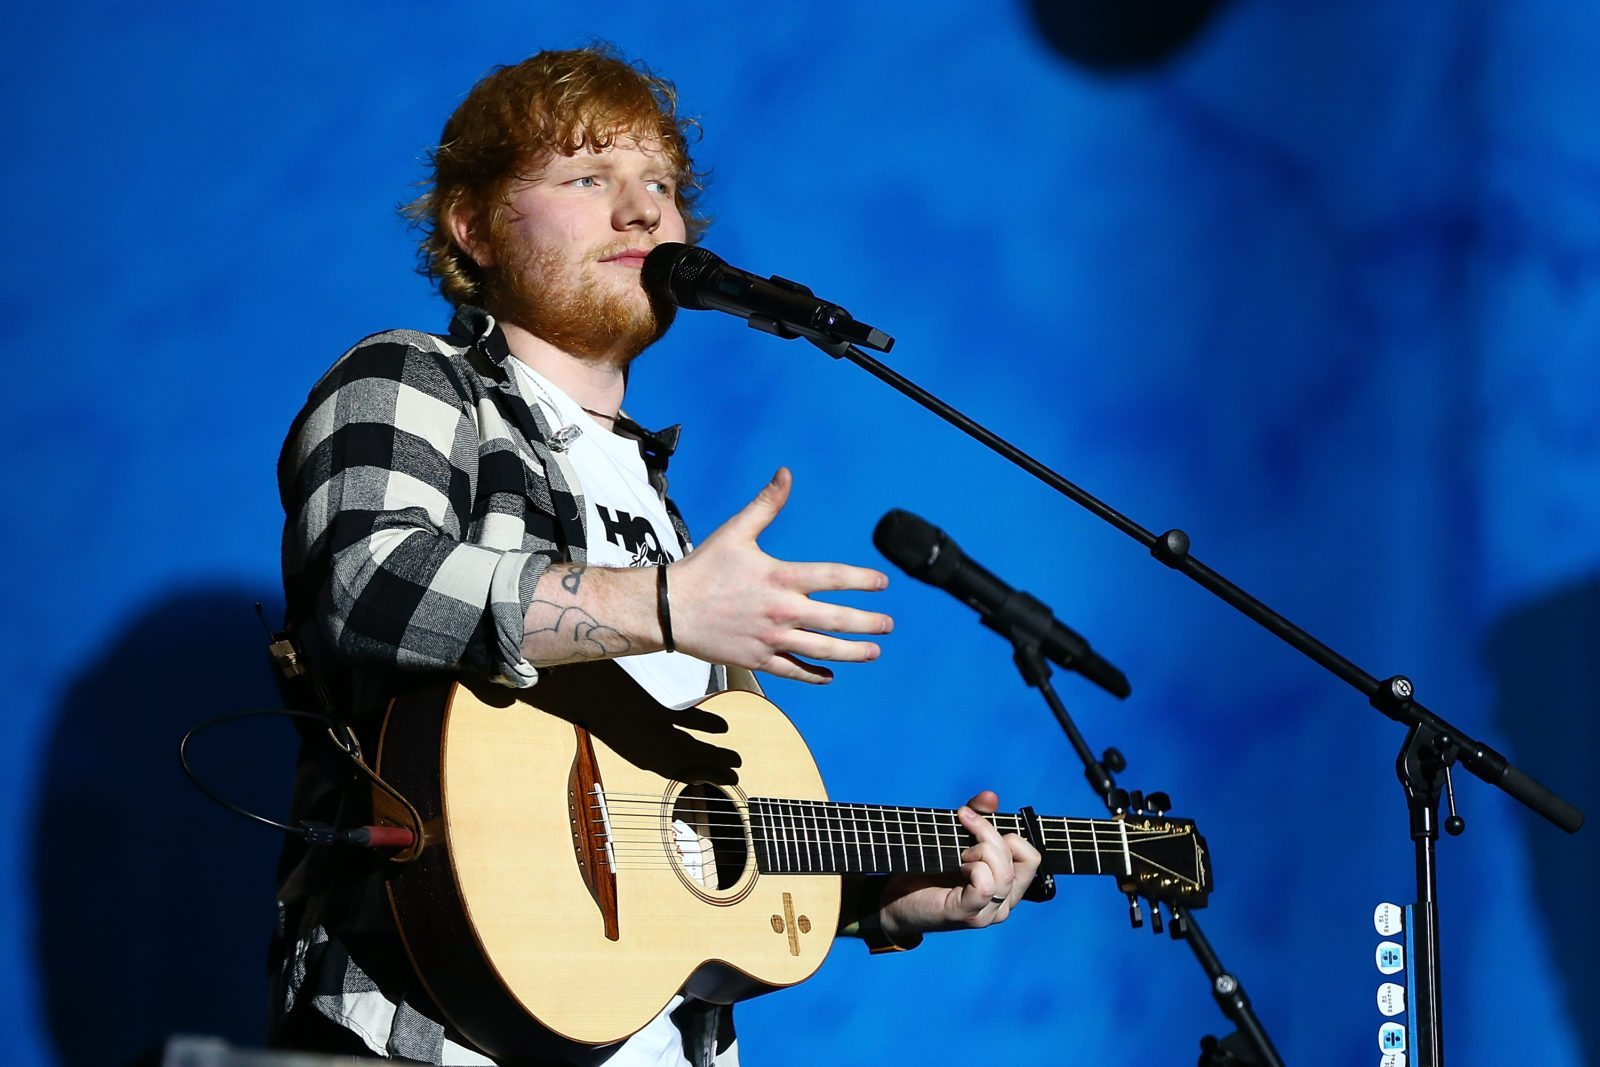 PERTH, AUSTRALIA - MARCH 02: Ed Sheeran interacts with concert-goers during his concert on the opening night of his Australian tour at Optus Stadium on March 2, 2018 in Perth, Australia. (Photo by Paul Kane/Getty Images)